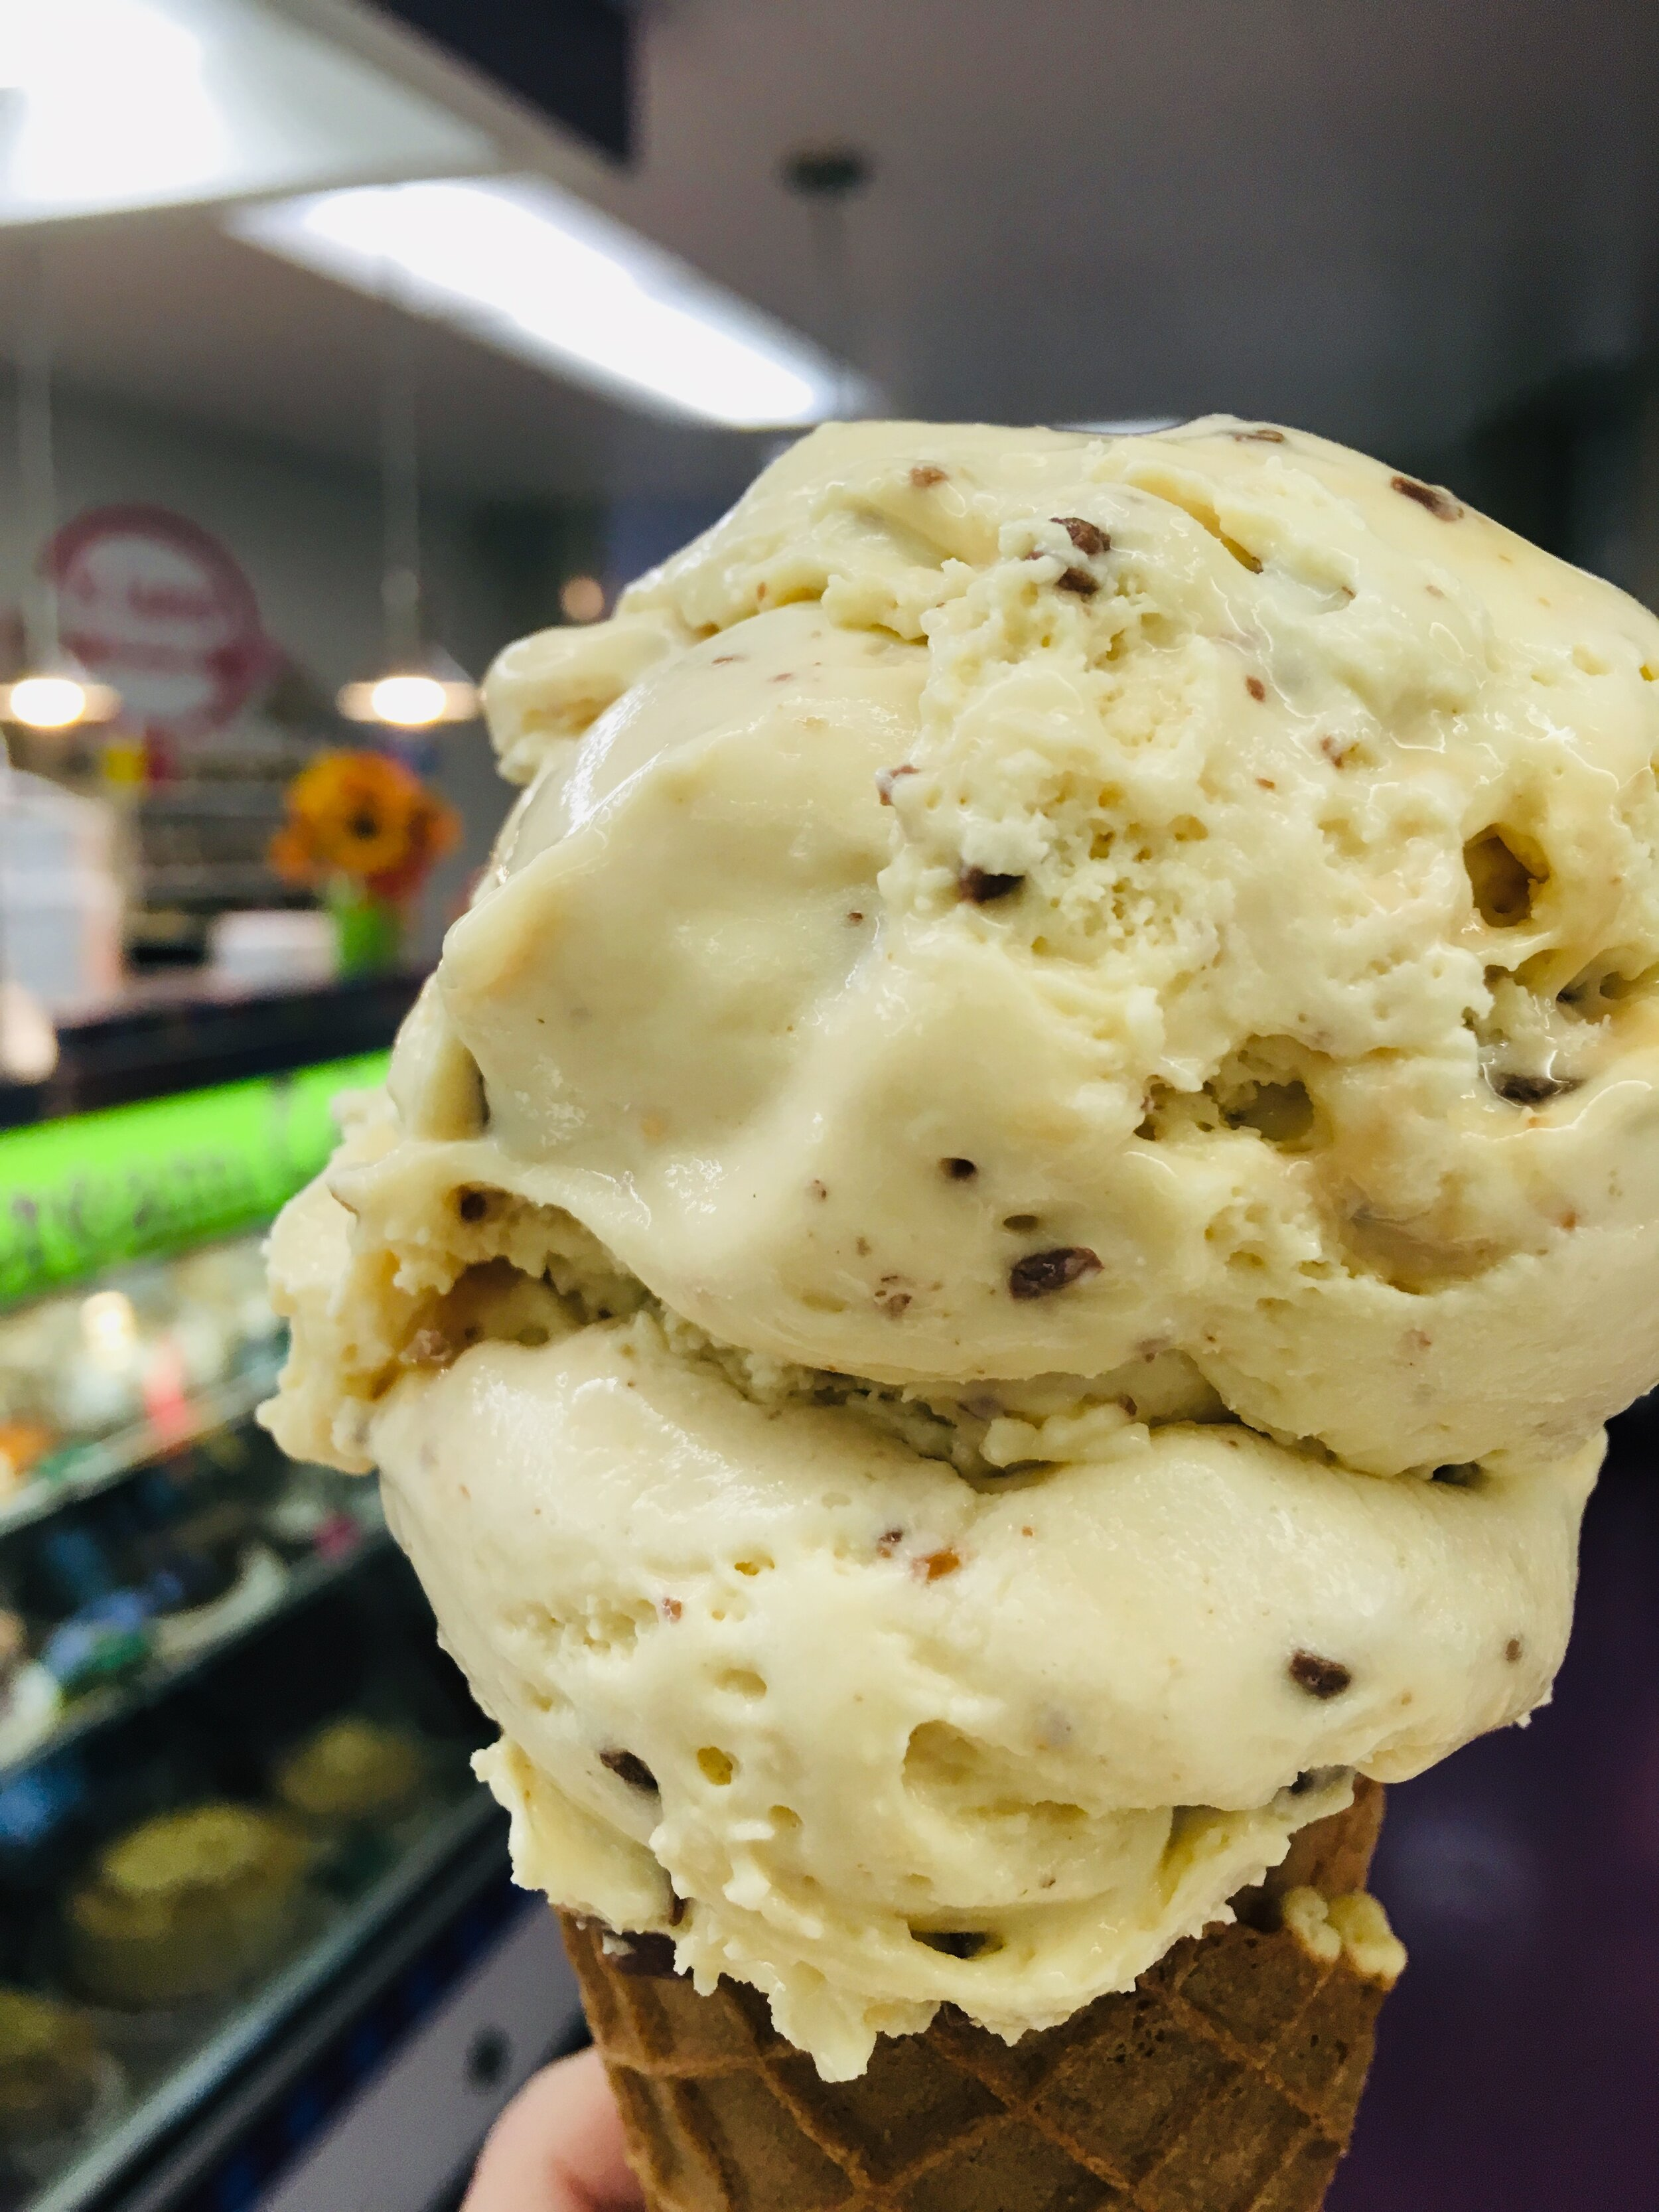 SALTMINE DETROIT - Caramel ice cream filled with salt, locally roasted fresh pecans and chocolate covered toffee pieces. One of our best sellers.